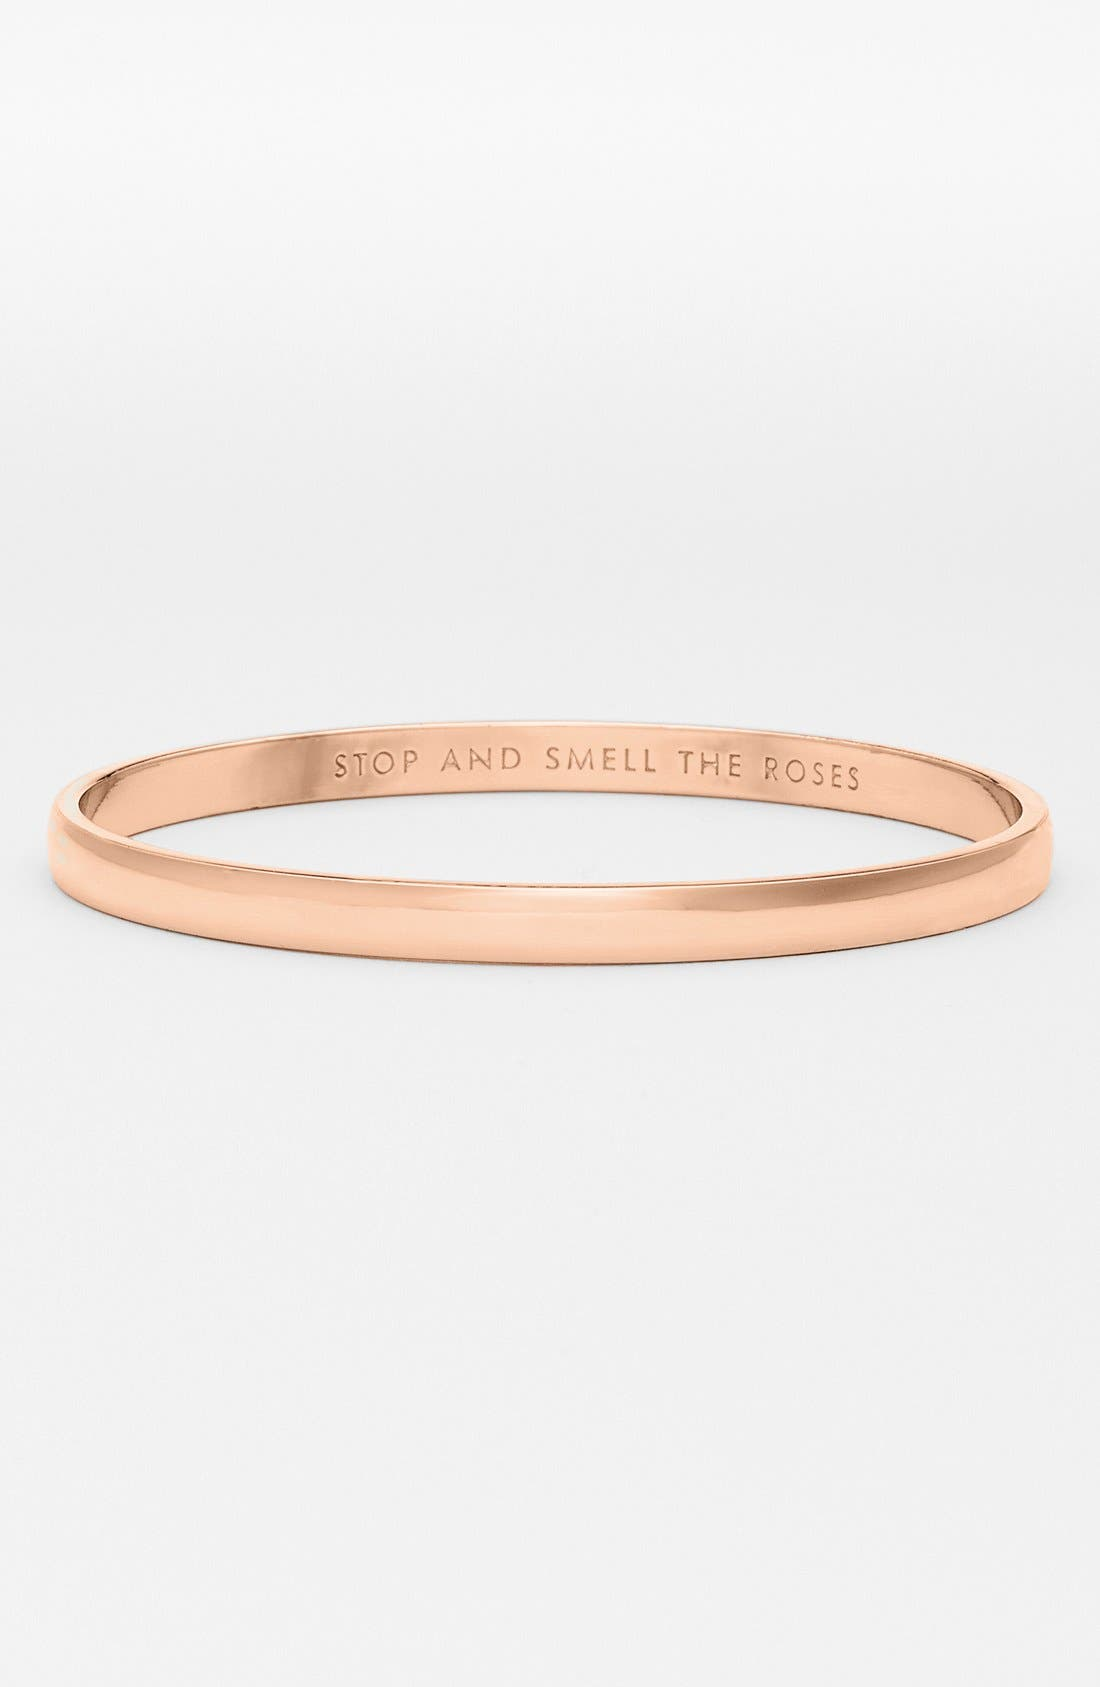 KATE SPADE NEW YORK, 'idiom - stop and smell the roses' bangle, Main thumbnail 1, color, ROSE GOLD